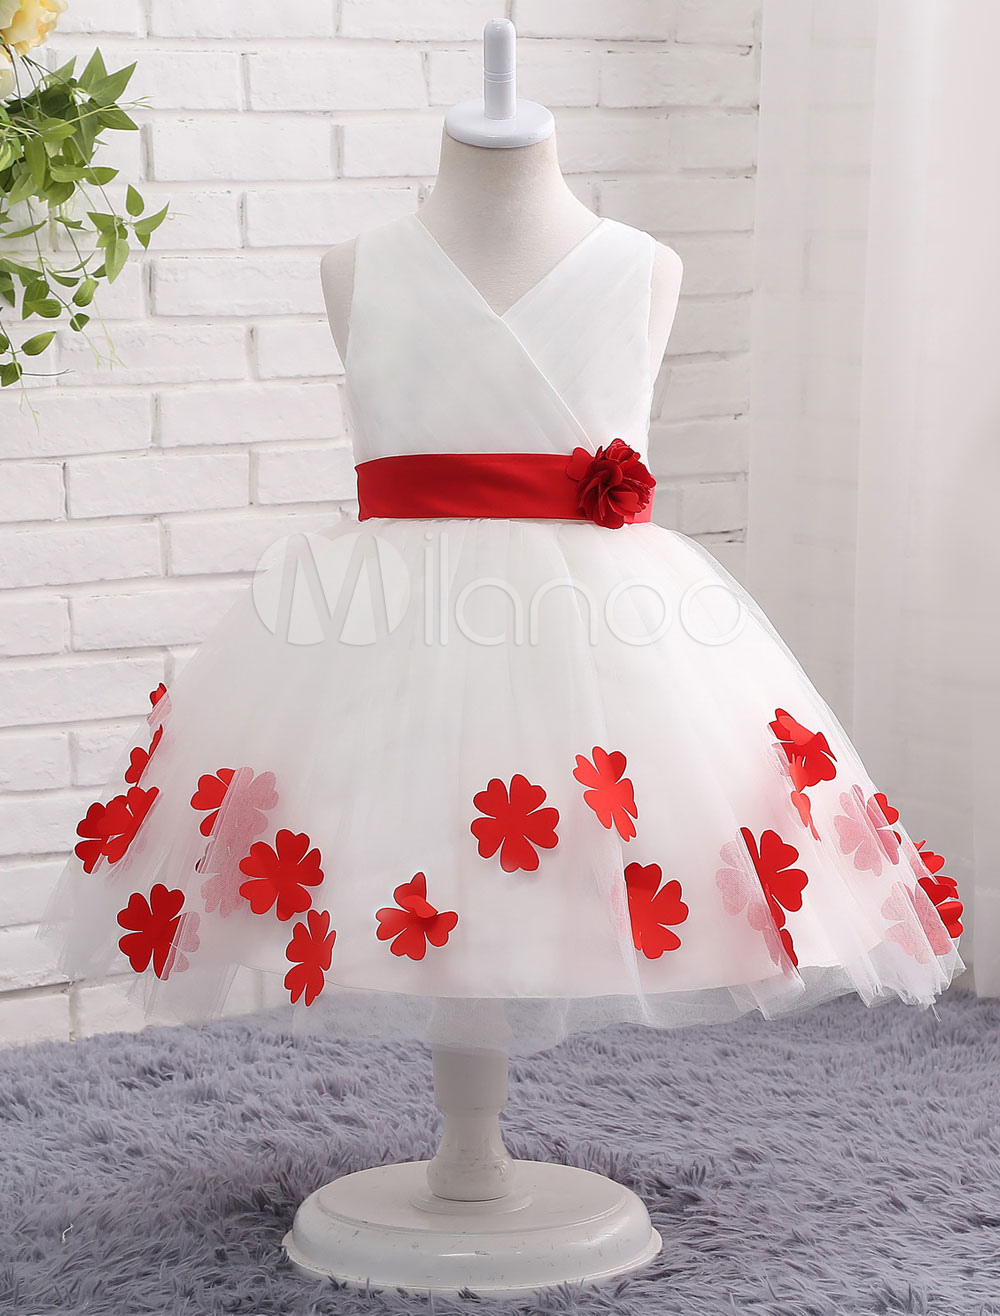 Buy Ivory Flower Girl Dress Flower Bow Sash Princess V Neck Sleeveless Knee Length Toddler's Pageant Dress for $64.79 in Milanoo store